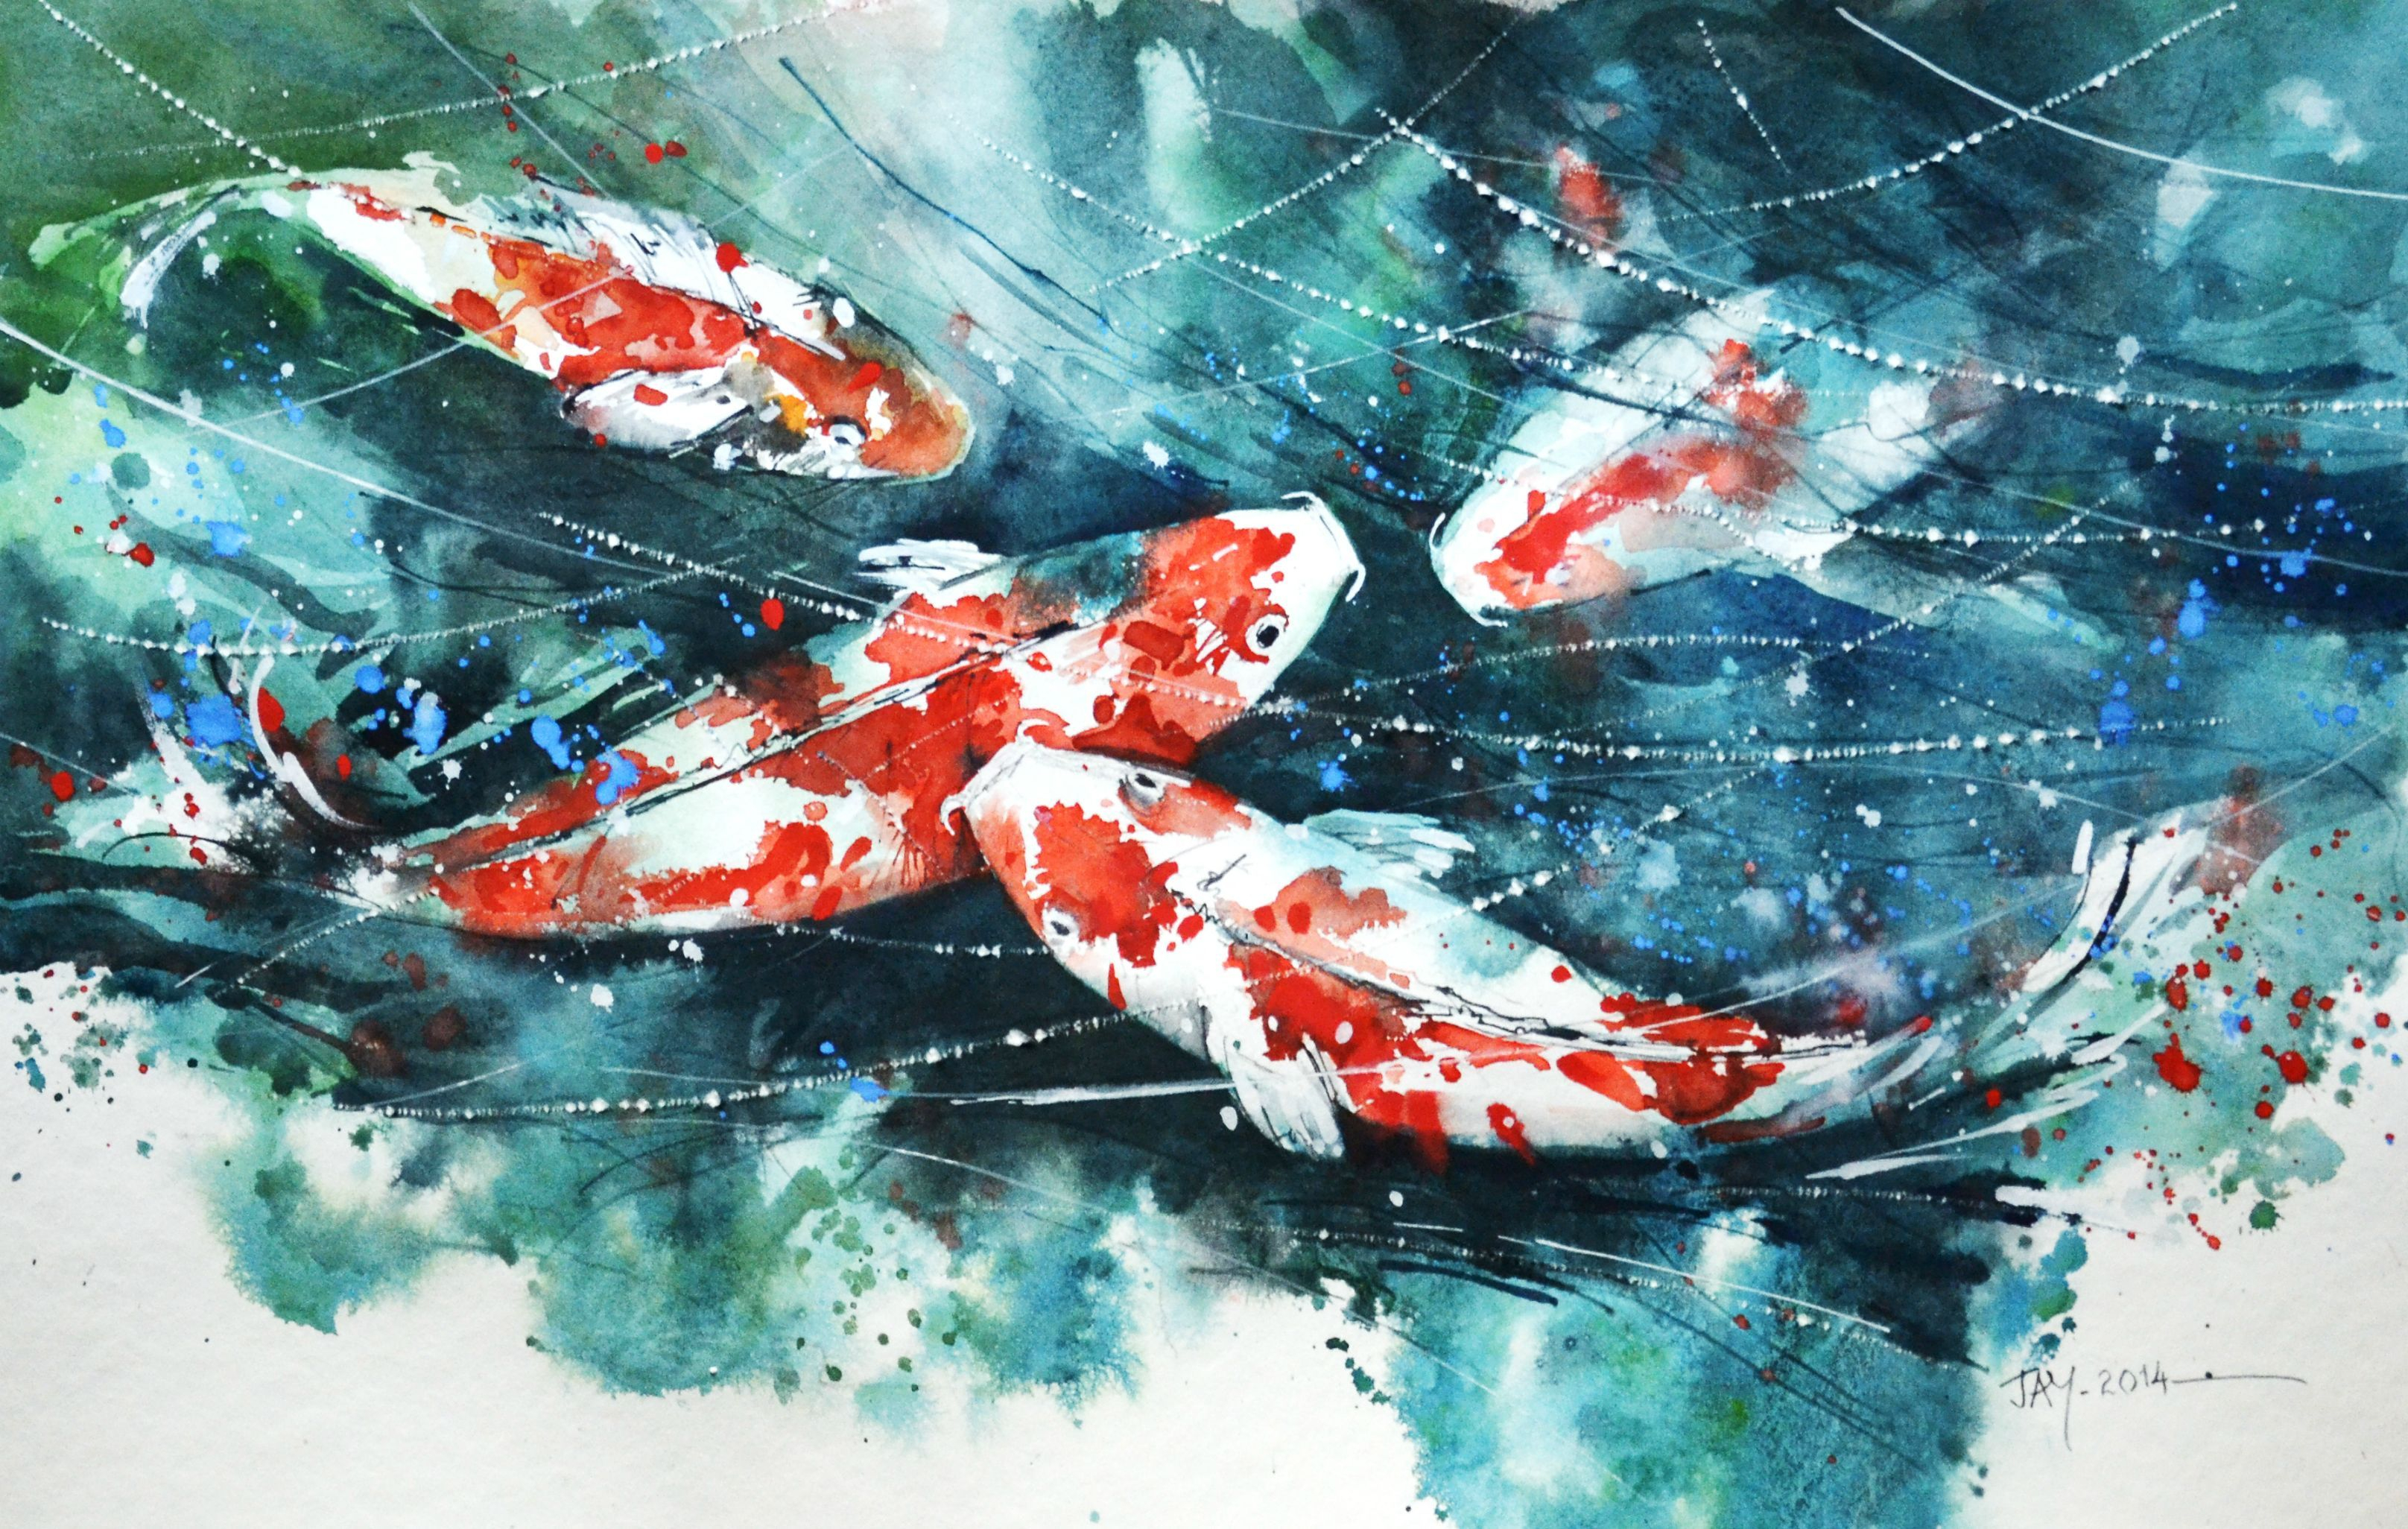 3232x2052 Koi Fish Watercolor Painting Speed Painting